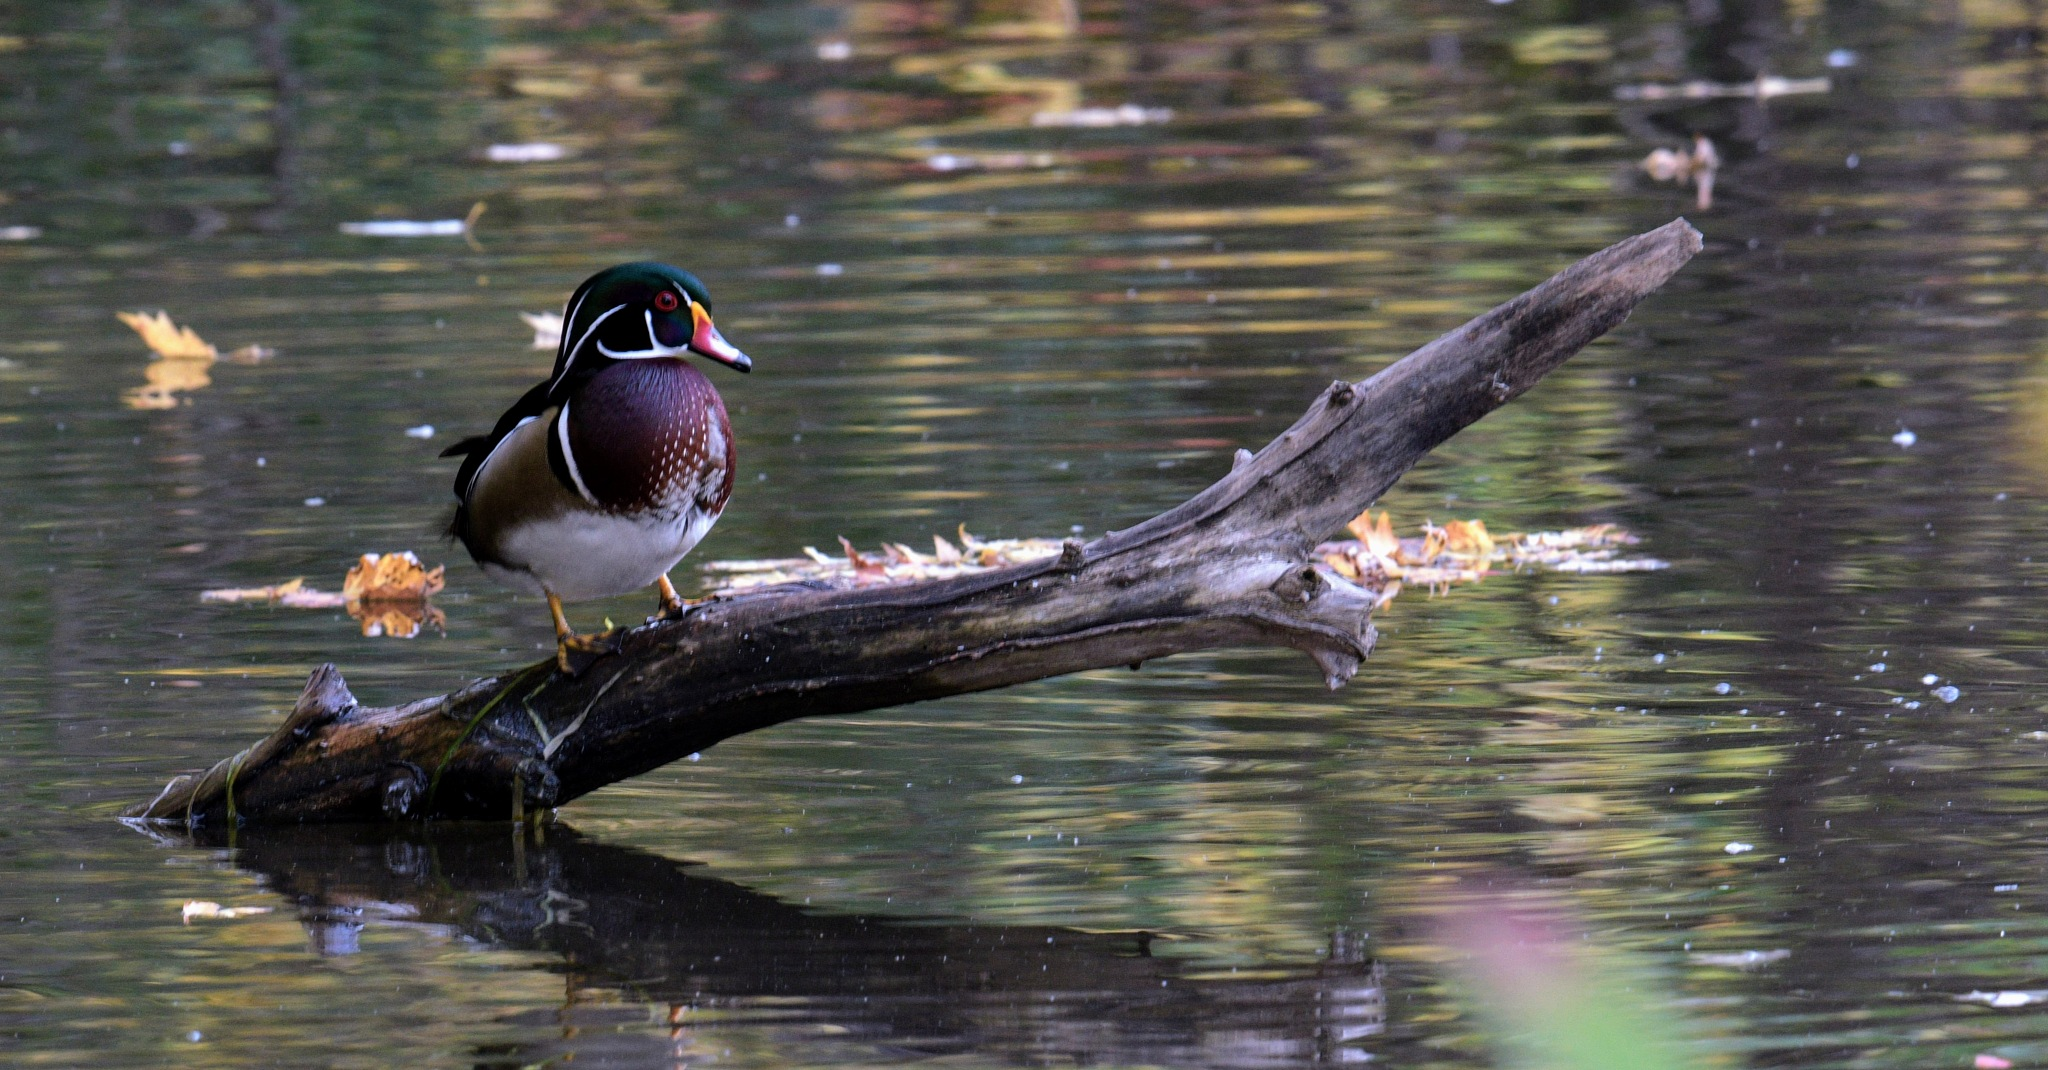 Male Wood Duck by Simon Dadouche